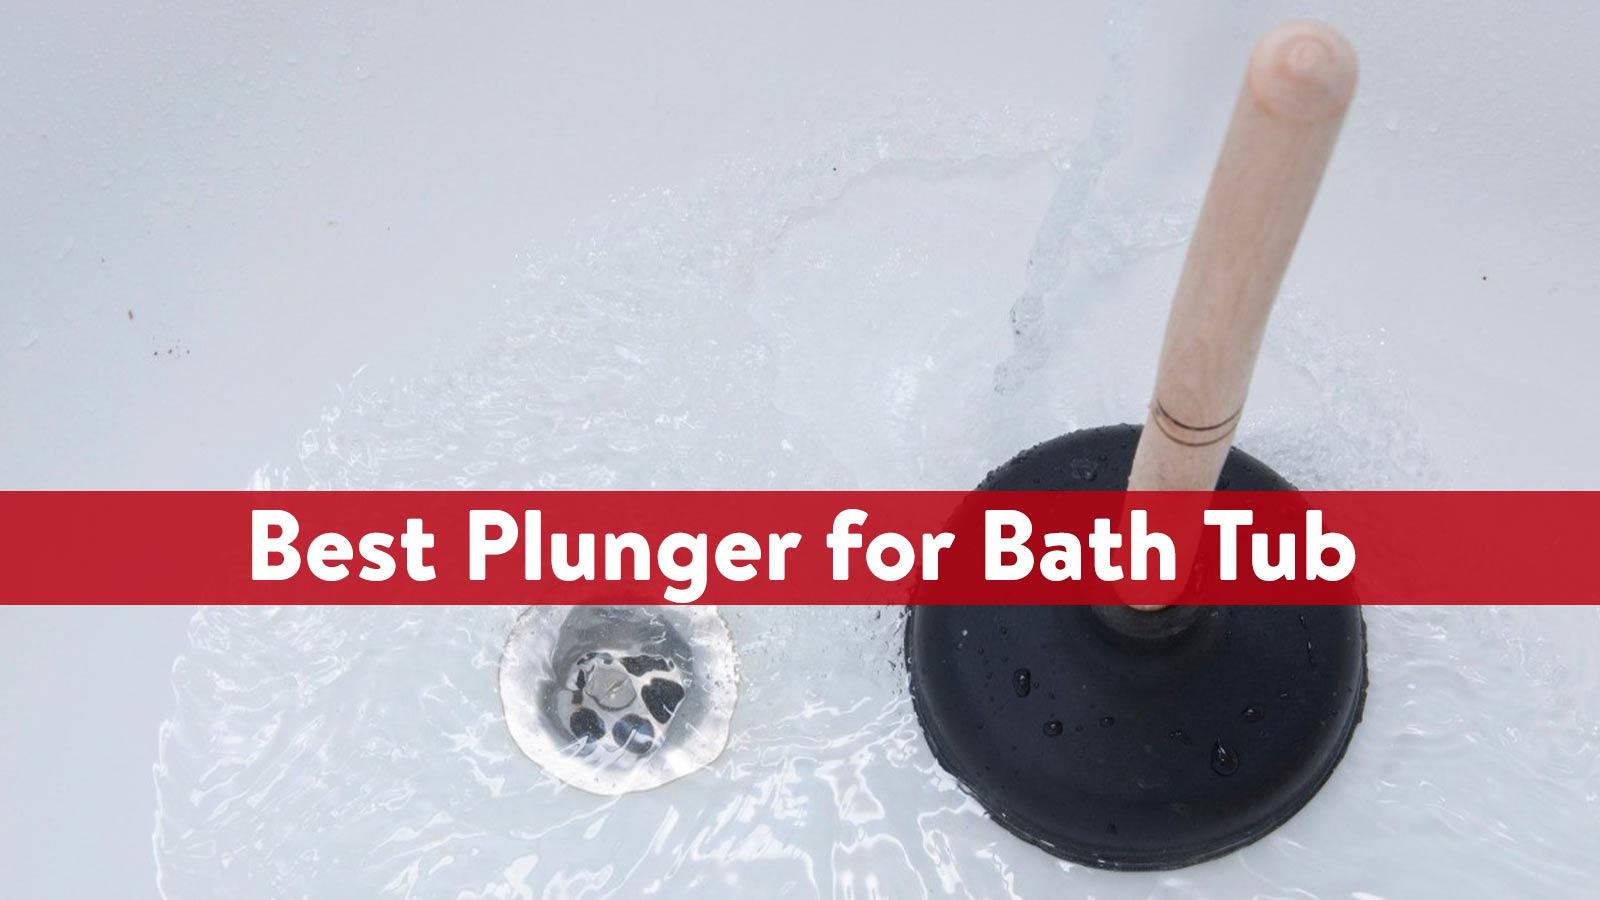 Best Plunger for Bath Tub